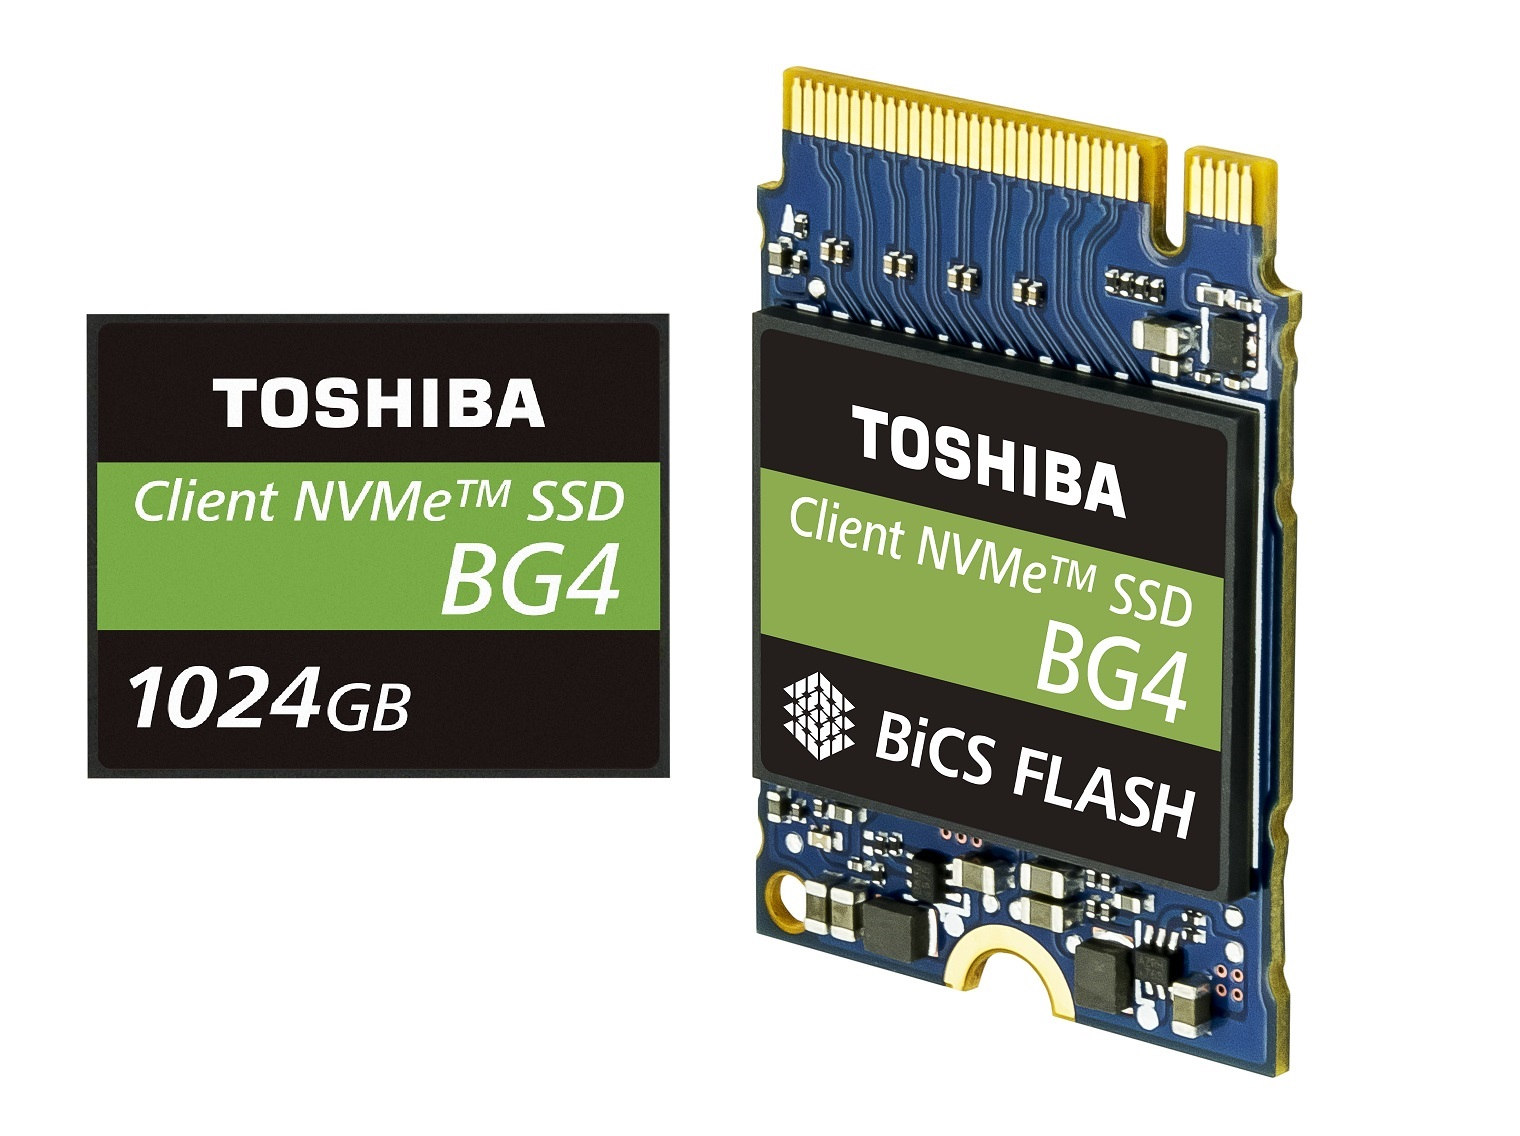 Flash Memory, Computer data storage, Intel, Toshiba Memory, Solid-state drive, PCI Express, NVM Express, Hard Drives, Computer hardware, 3D XPoint, Flash memory, flash memory, product, electronics, microcontroller, electronics accessory, technology, personal computer hardware, product, computer data storage, hardware programmer